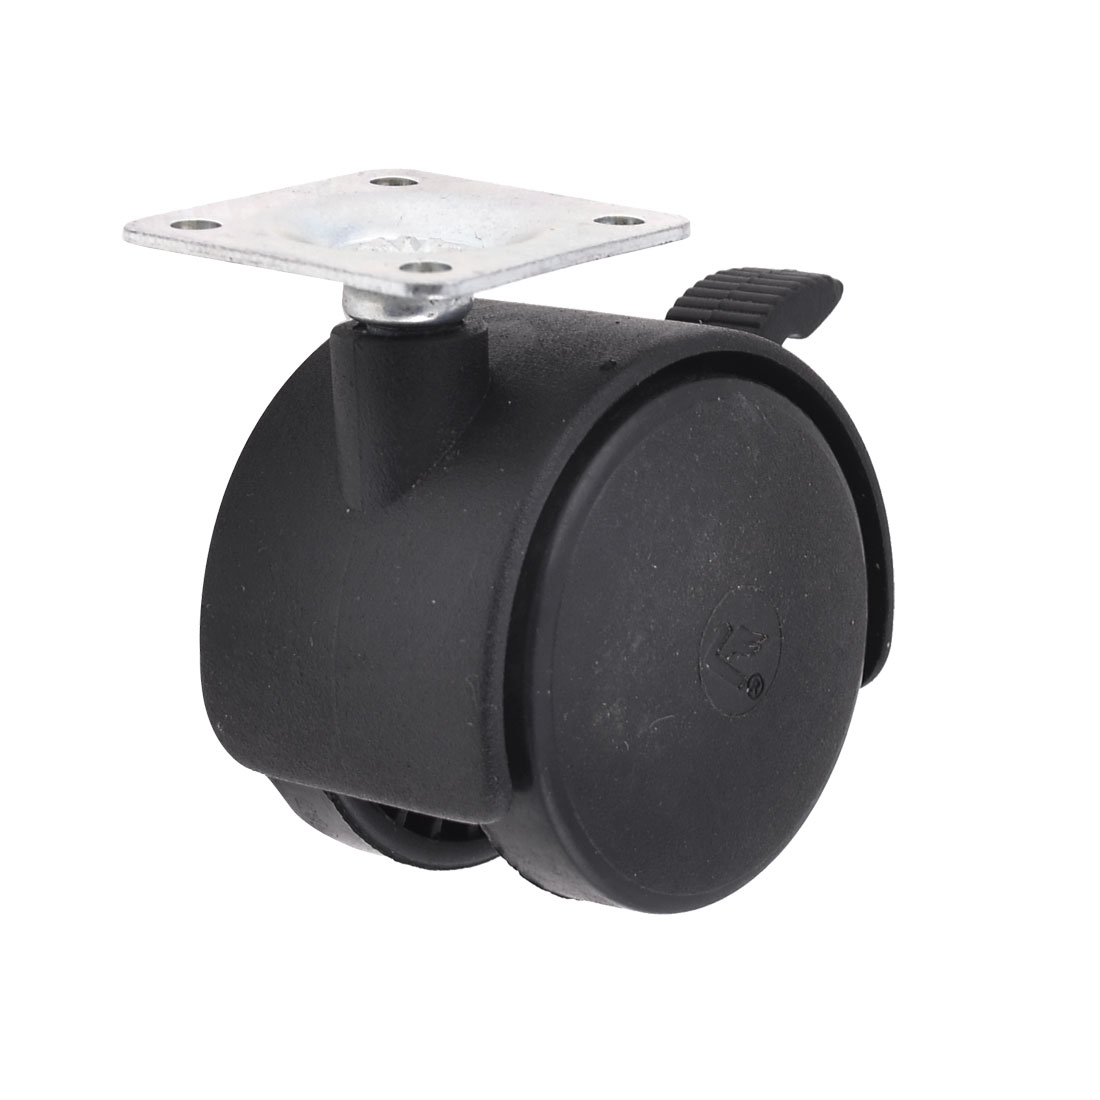 "Furniture 1.9"" Double Nylon Wheel Plate Mount Swivel Caster"